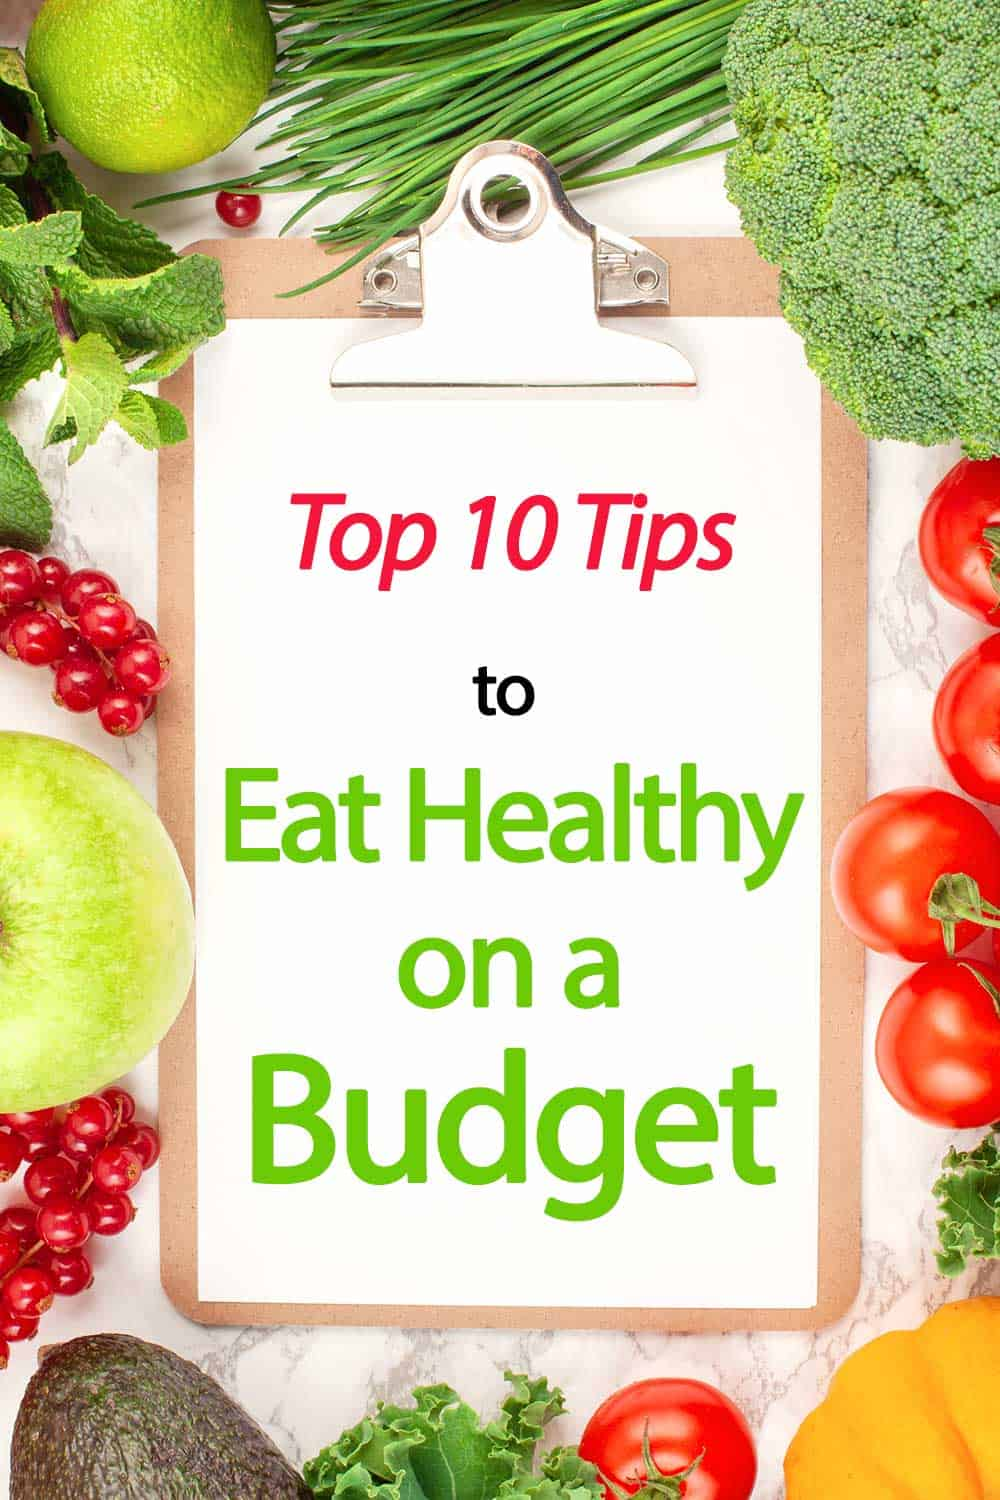 Eating Healthy on a Budget: Top 10 Tips To Save The Most Money